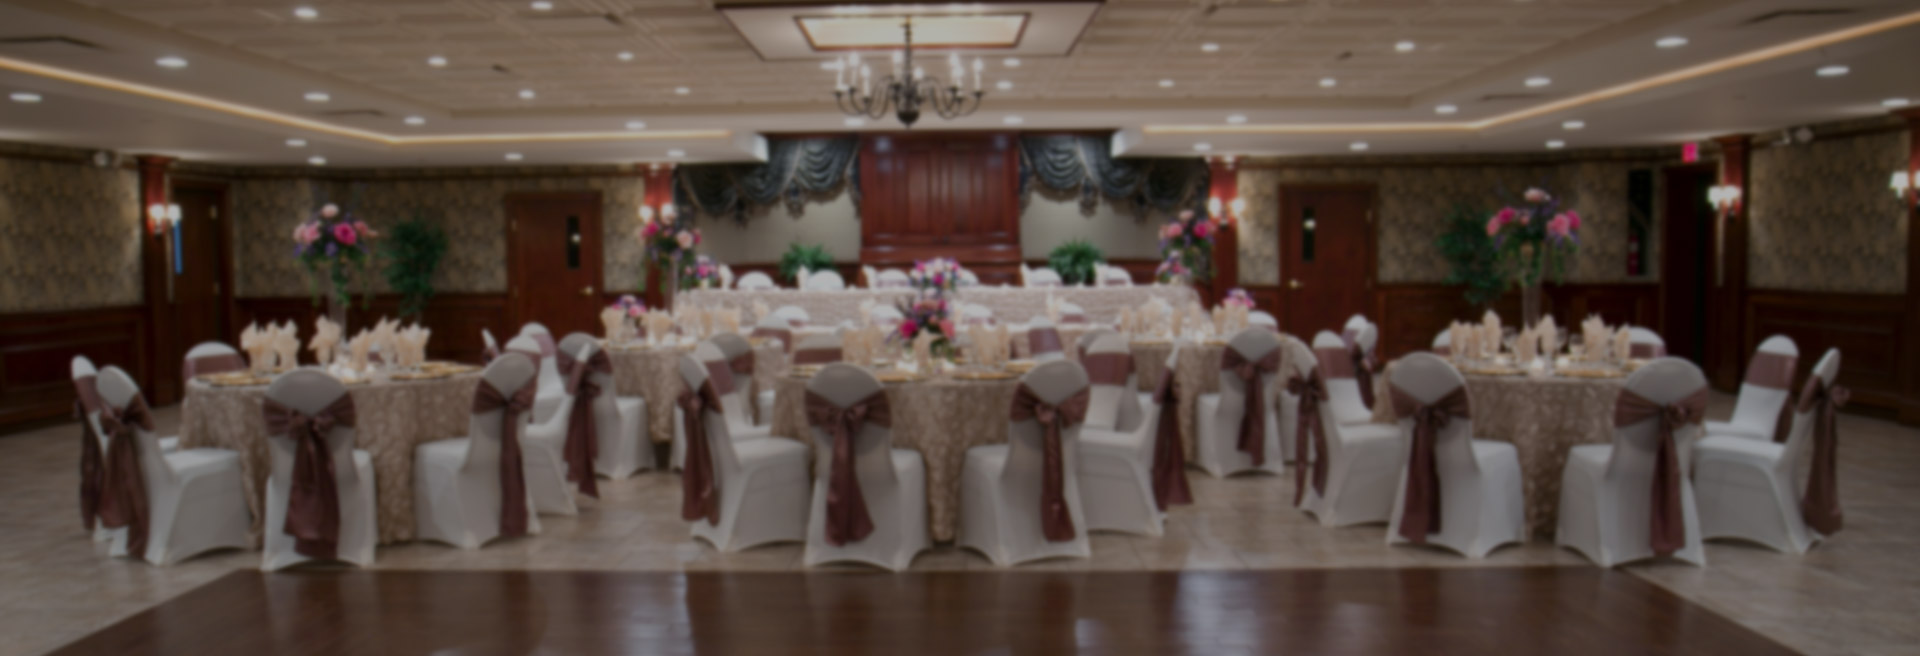 Wedding Reception Venues In Detroit Mi The Knot Autos Post